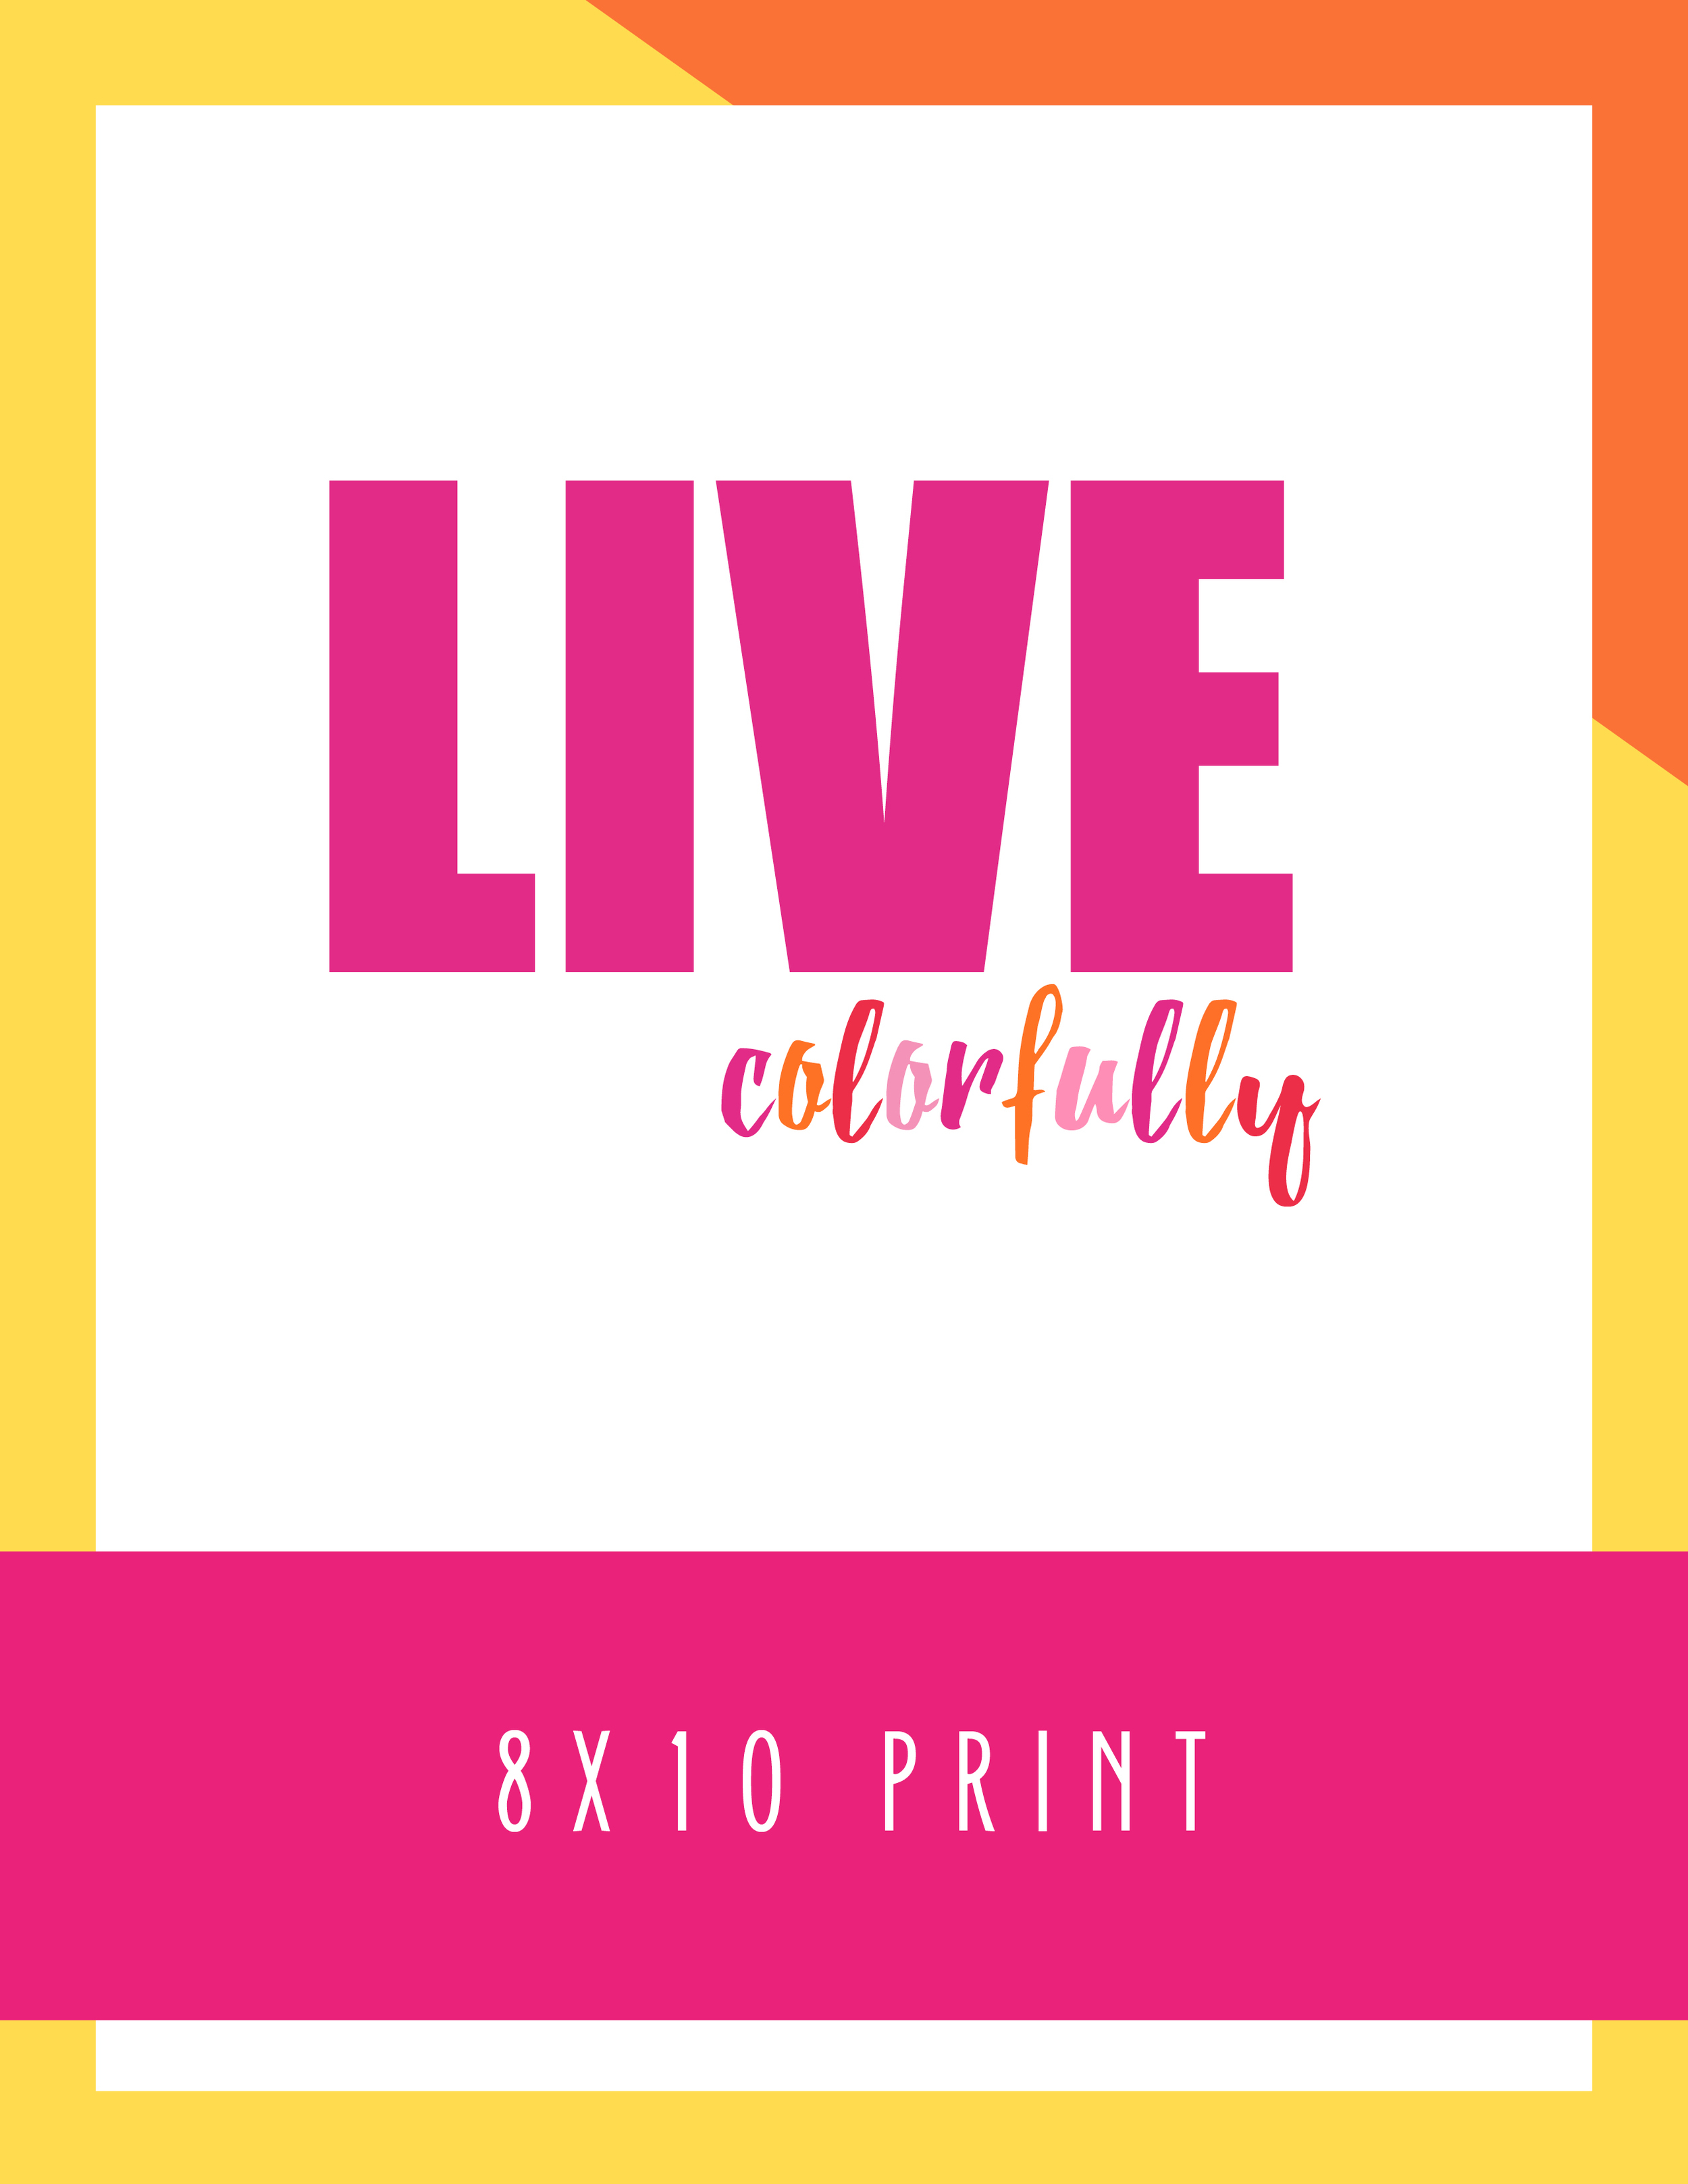 Bold & Pop Live Colorfully 8x10 Print